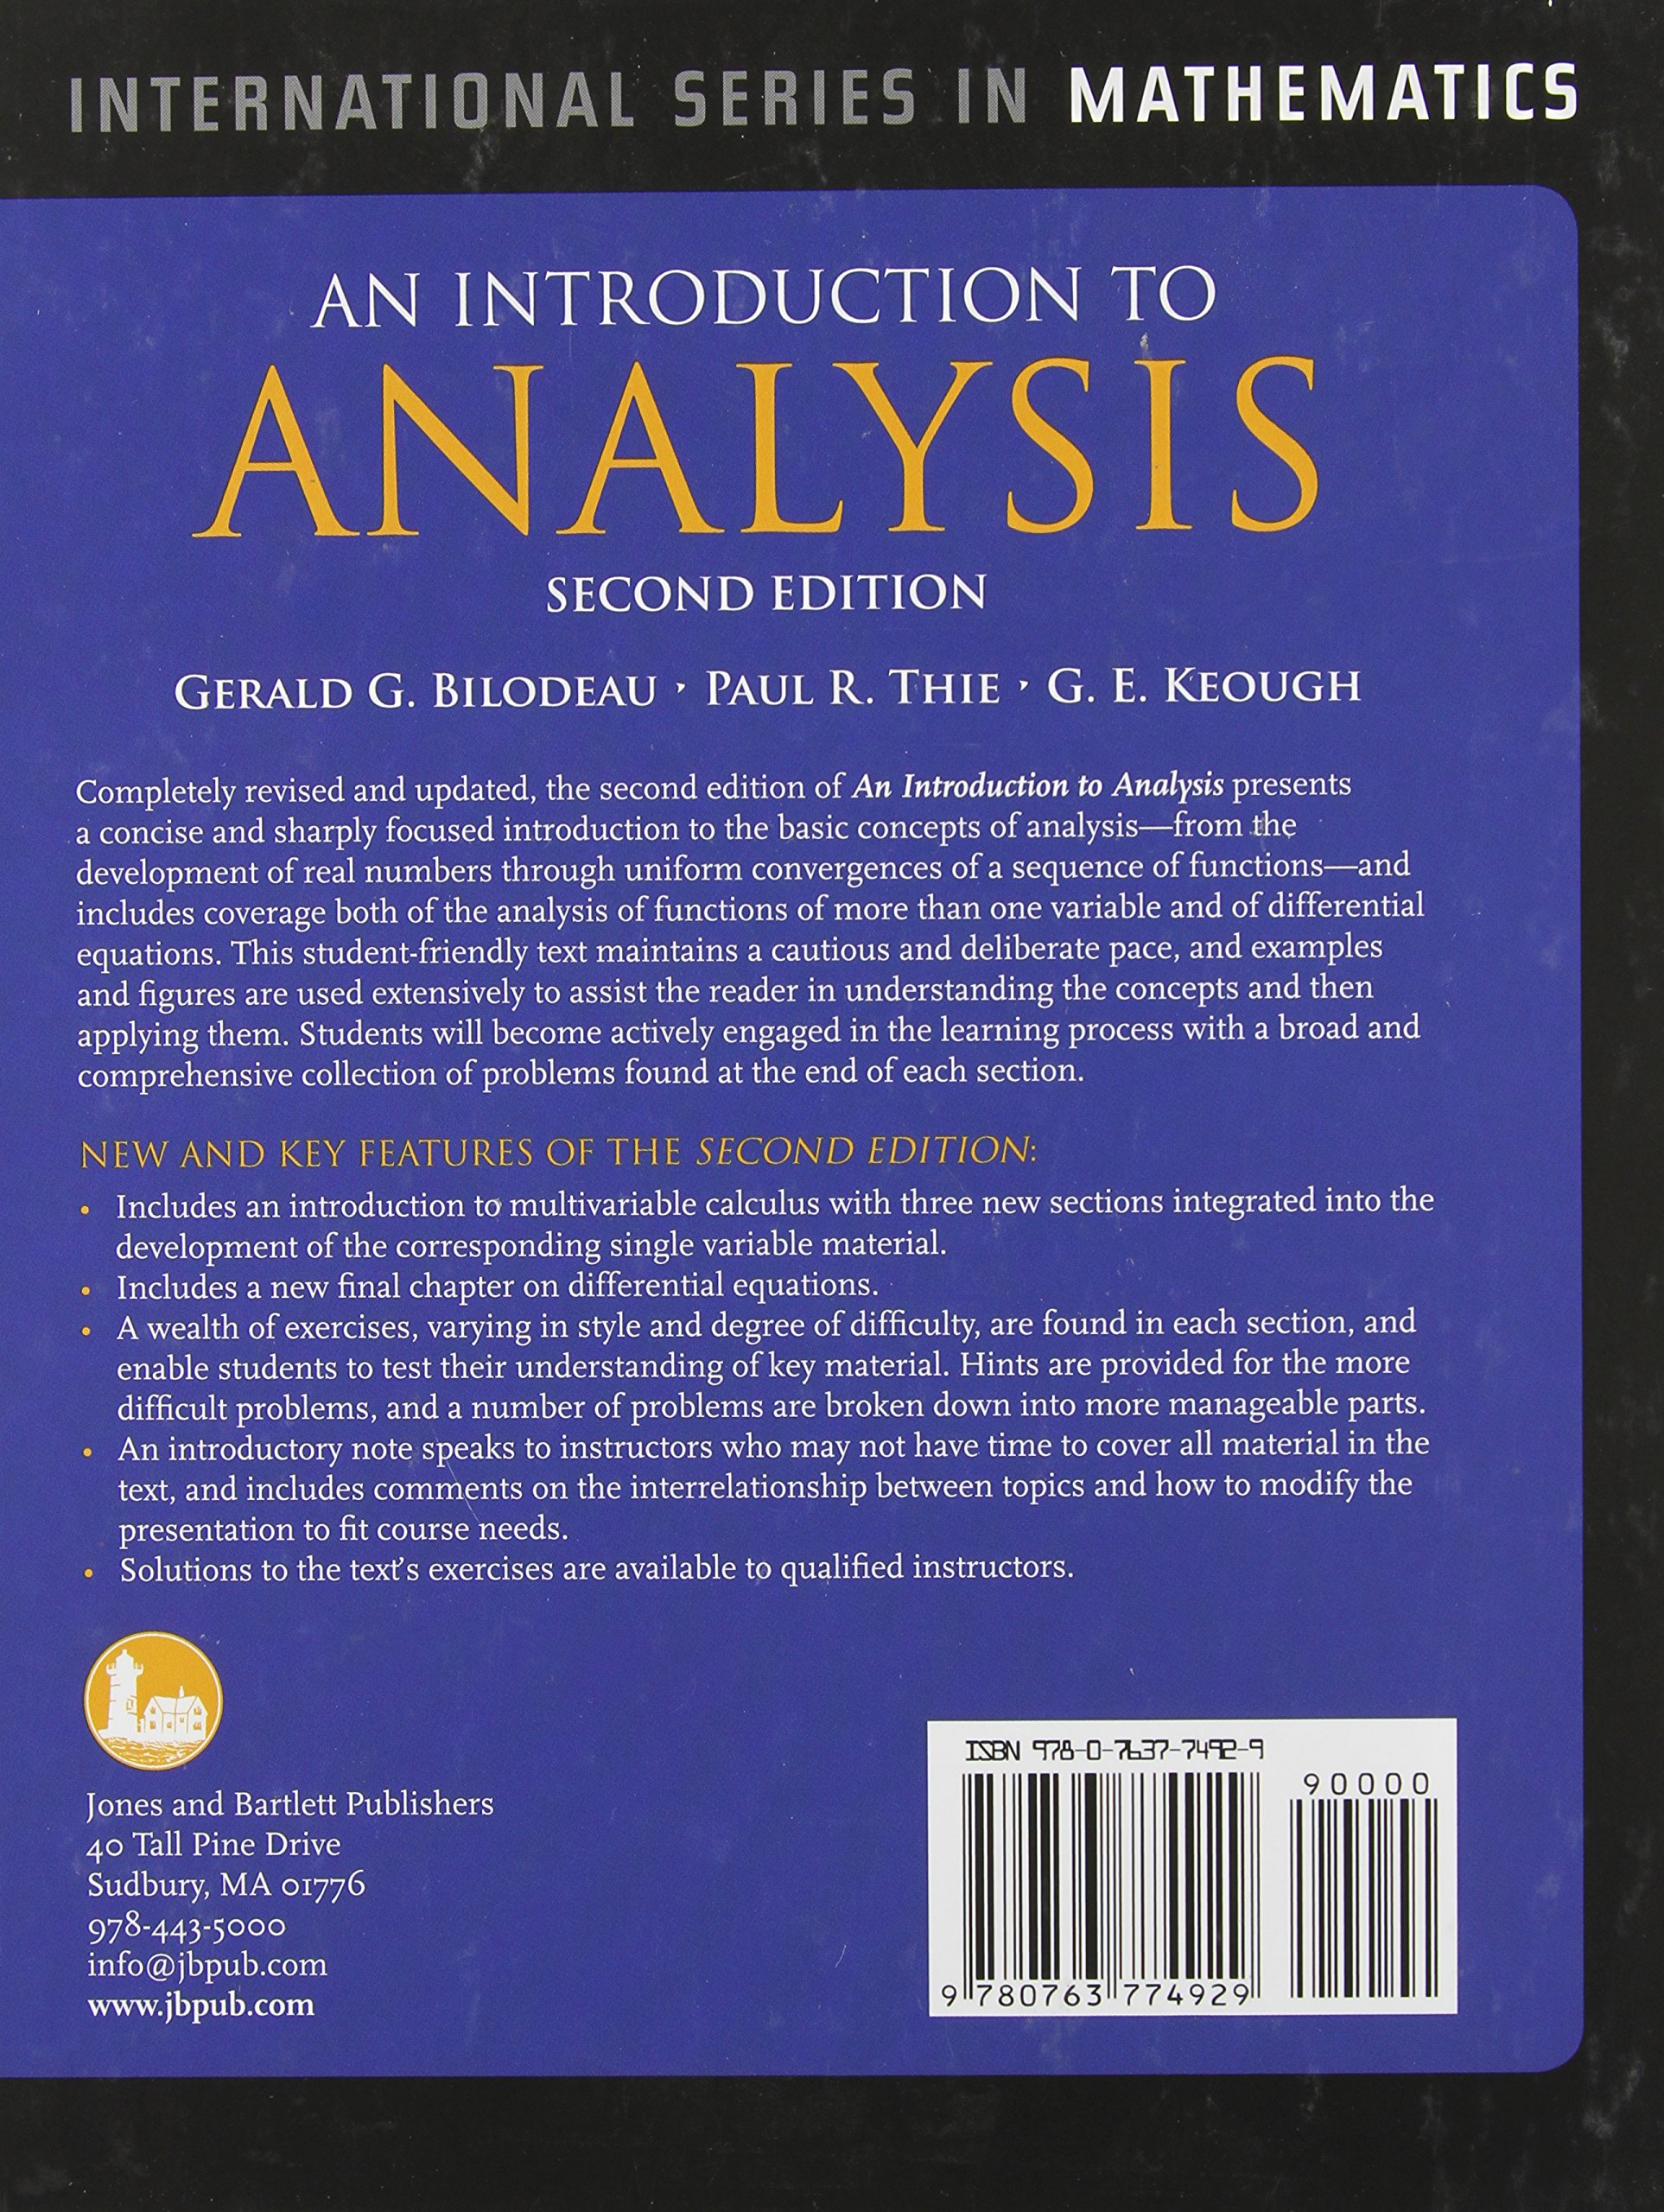 Buy an introduction to analysis international series in mathematics buy an introduction to analysis international series in mathematics book online at low prices in india an introduction to analysis international series fandeluxe Image collections